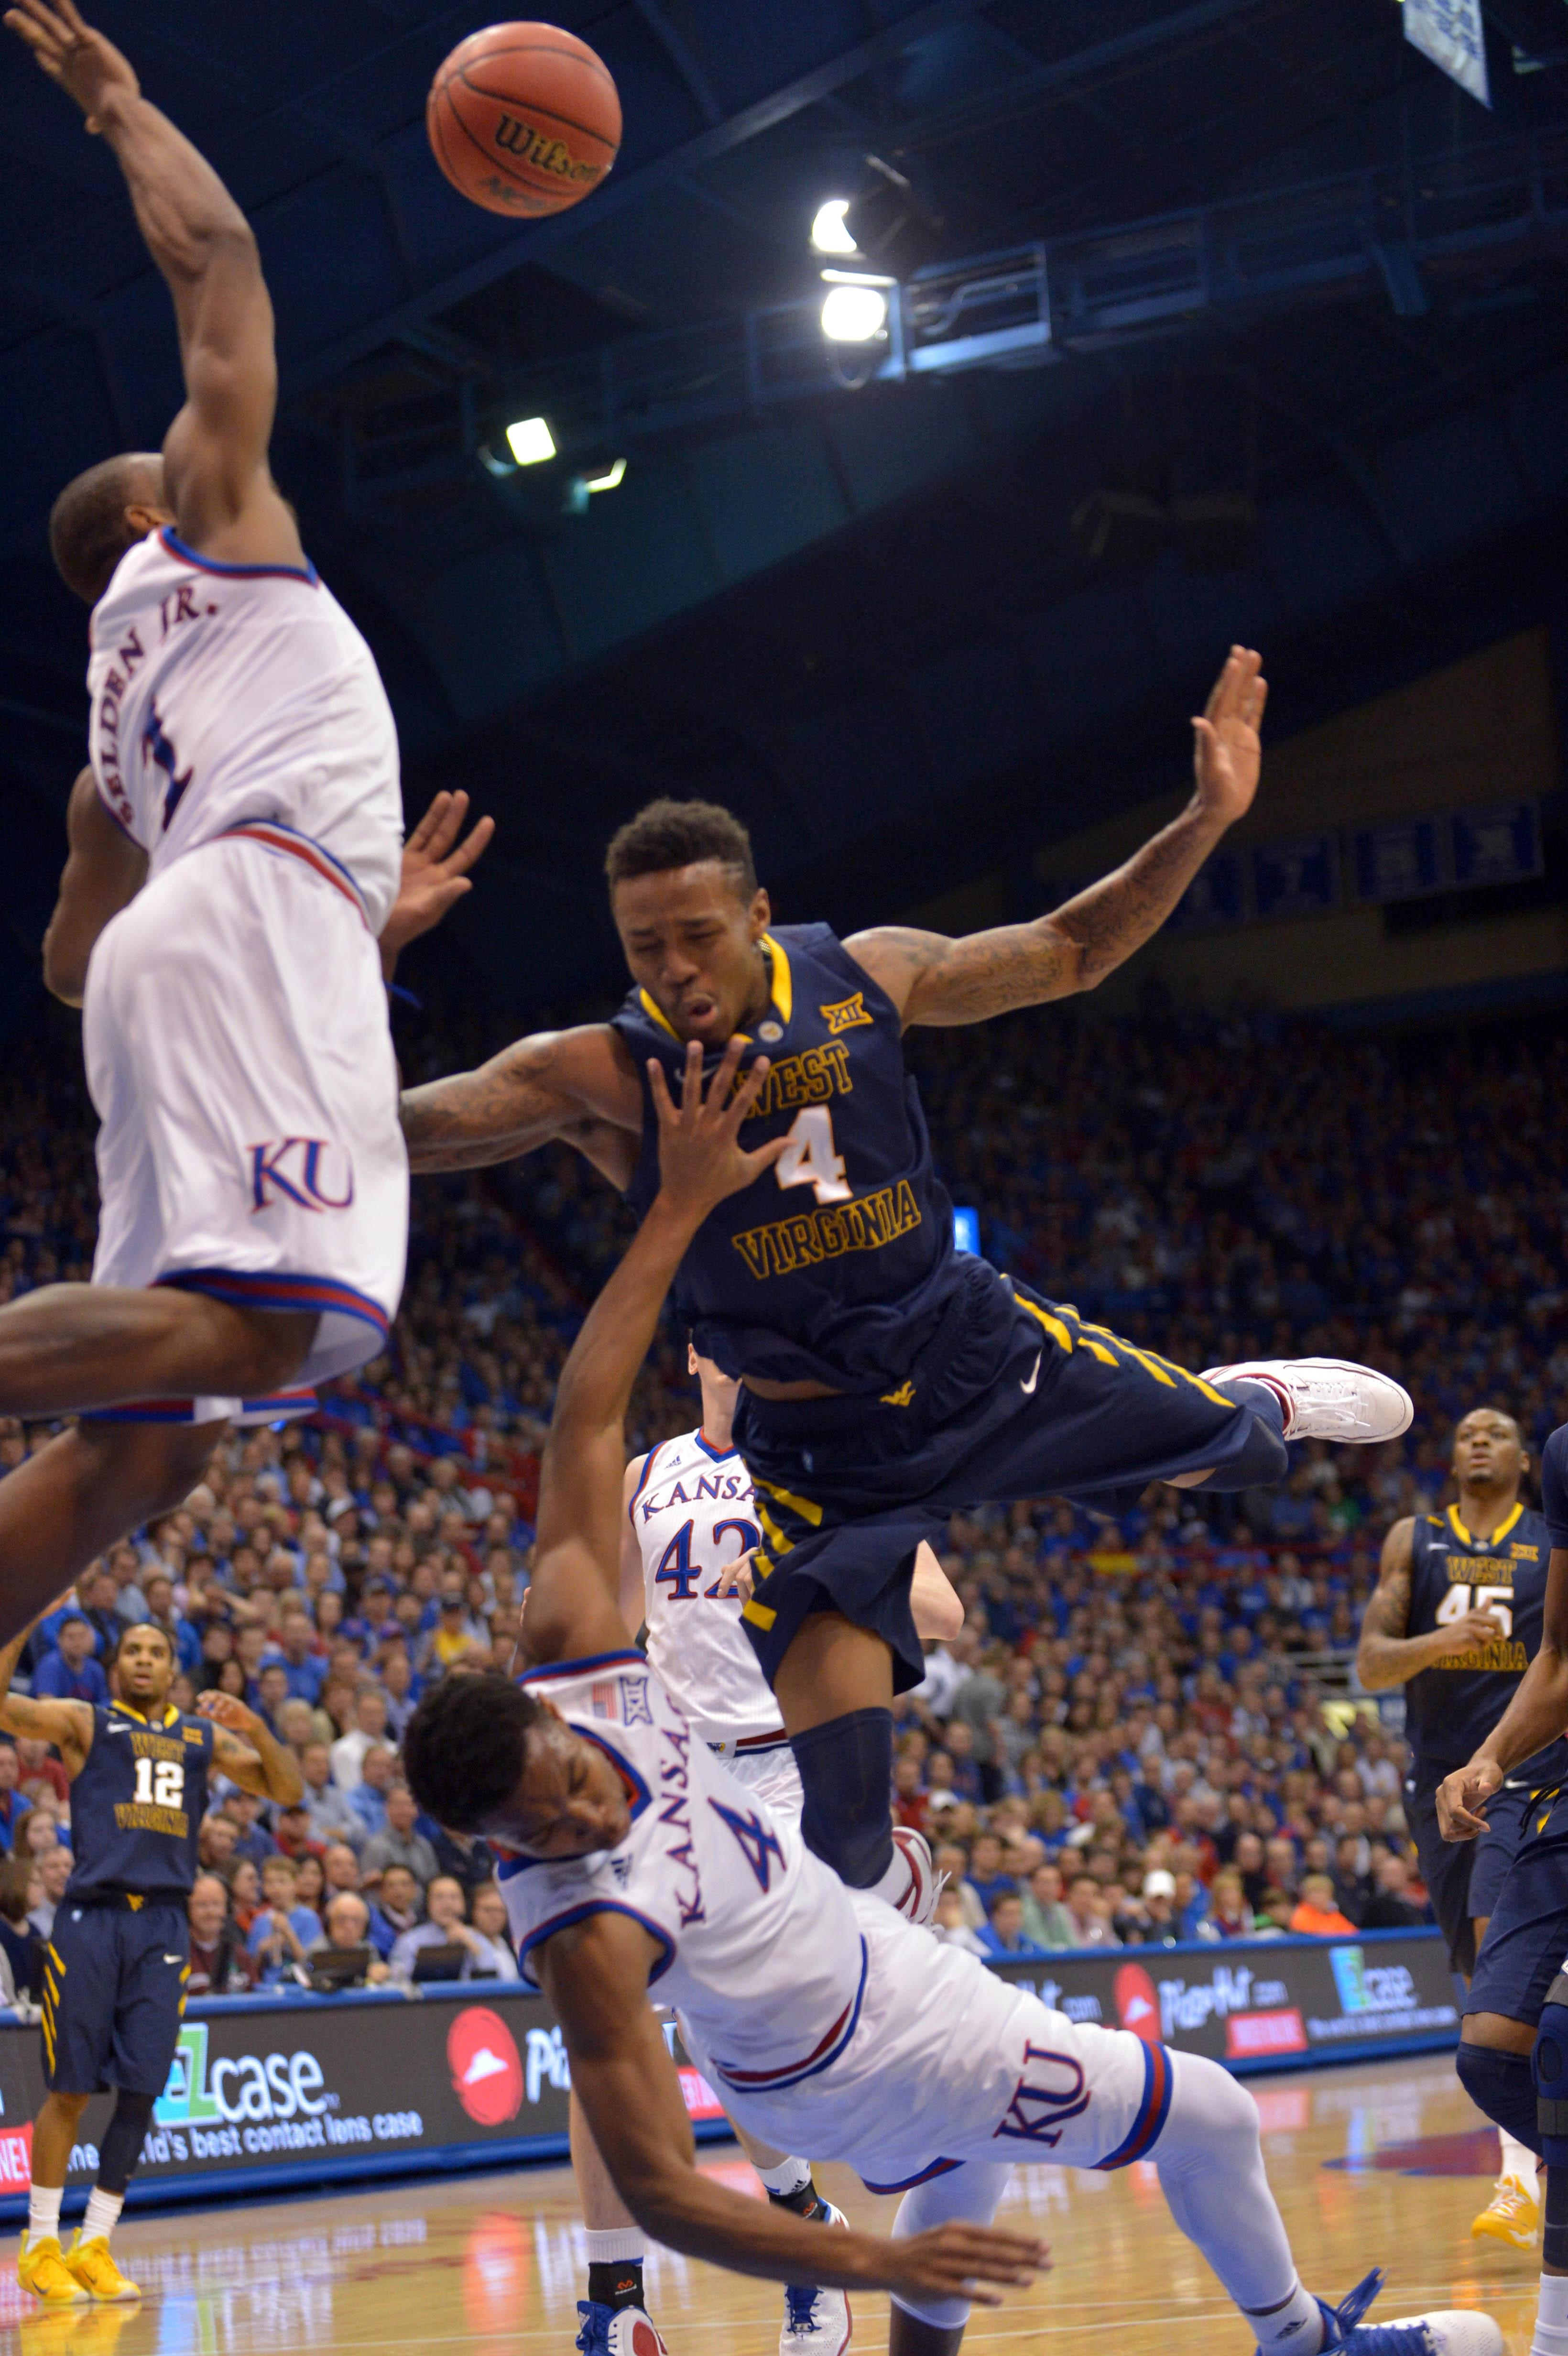 Kansas rallies from 18 down to win 11th Big 12 title outright